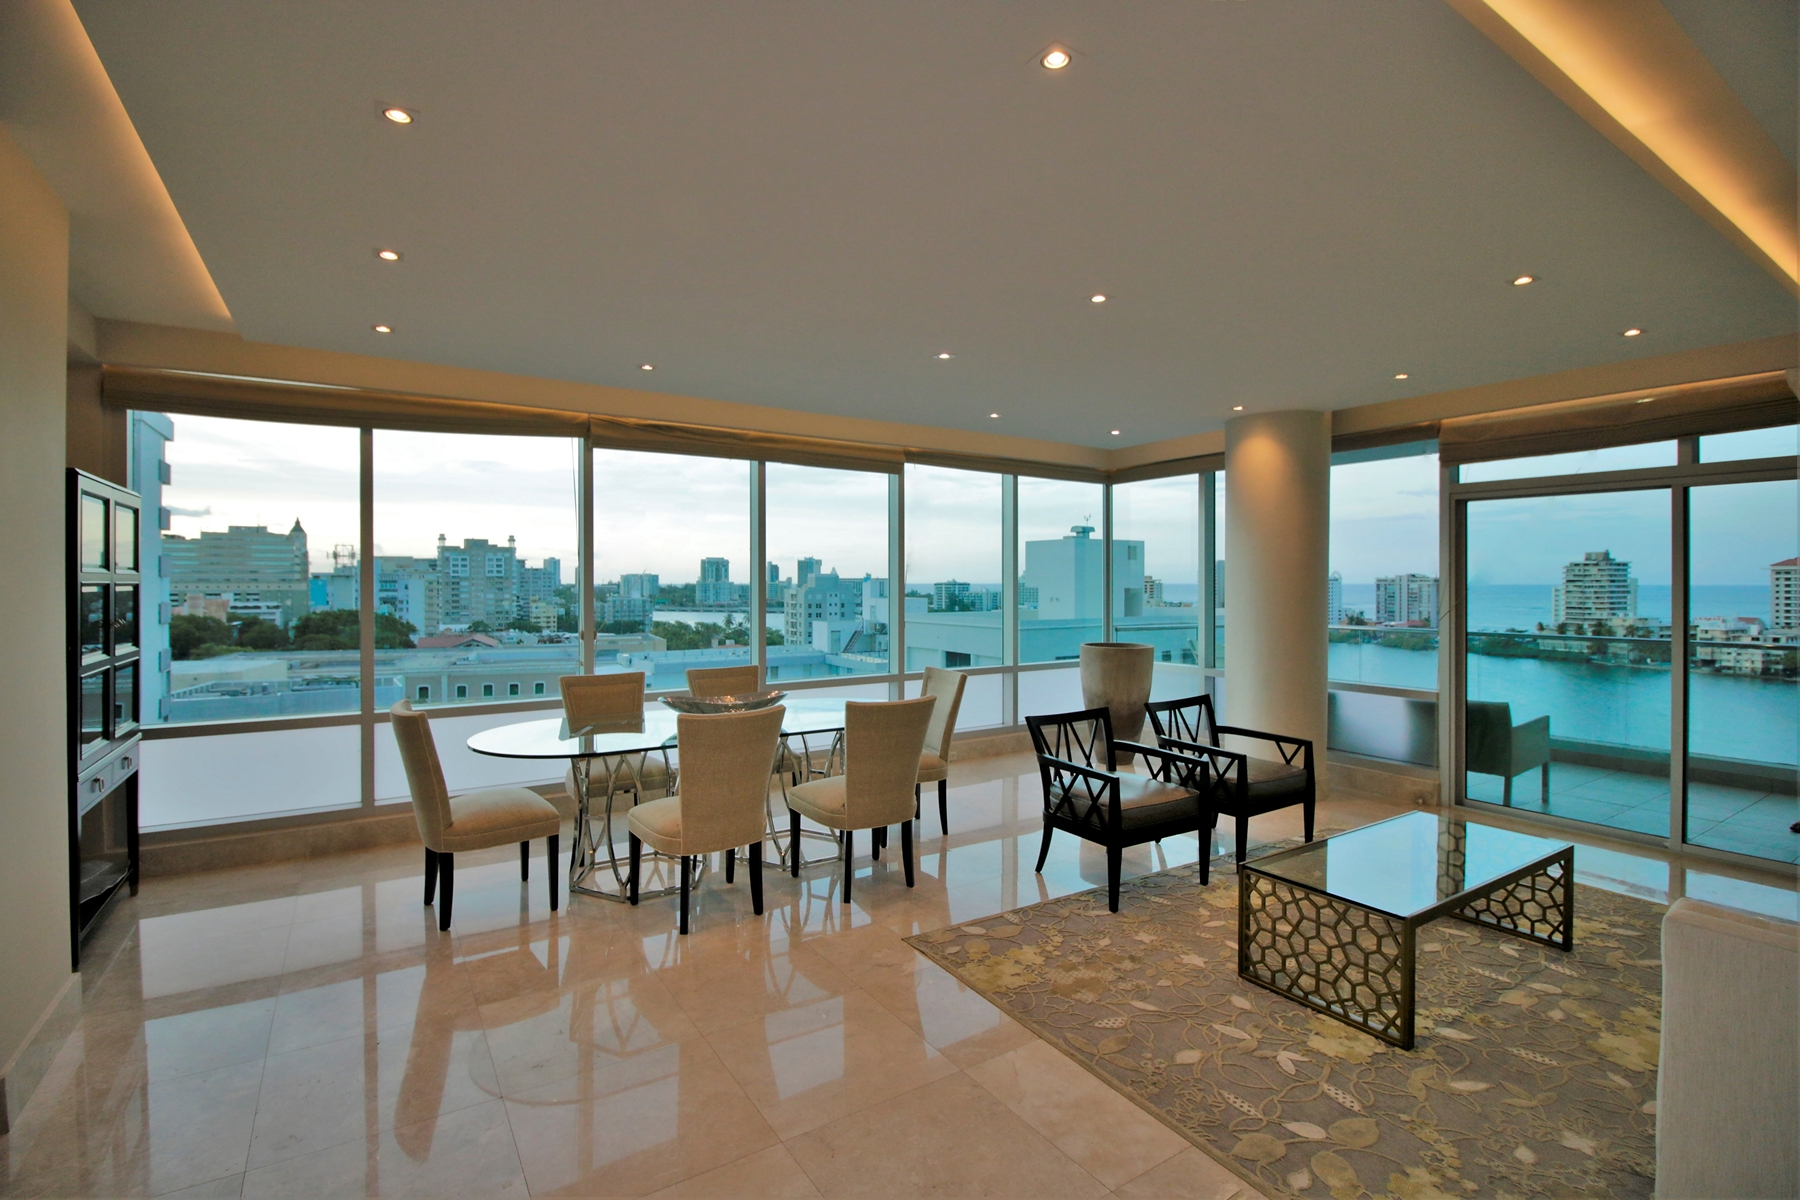 شقة بعمارة للـ Sale في Boundless Ocean View Contemporary 555 Calle Monserrate apt 10D San Juan, 00907 Puerto Rico